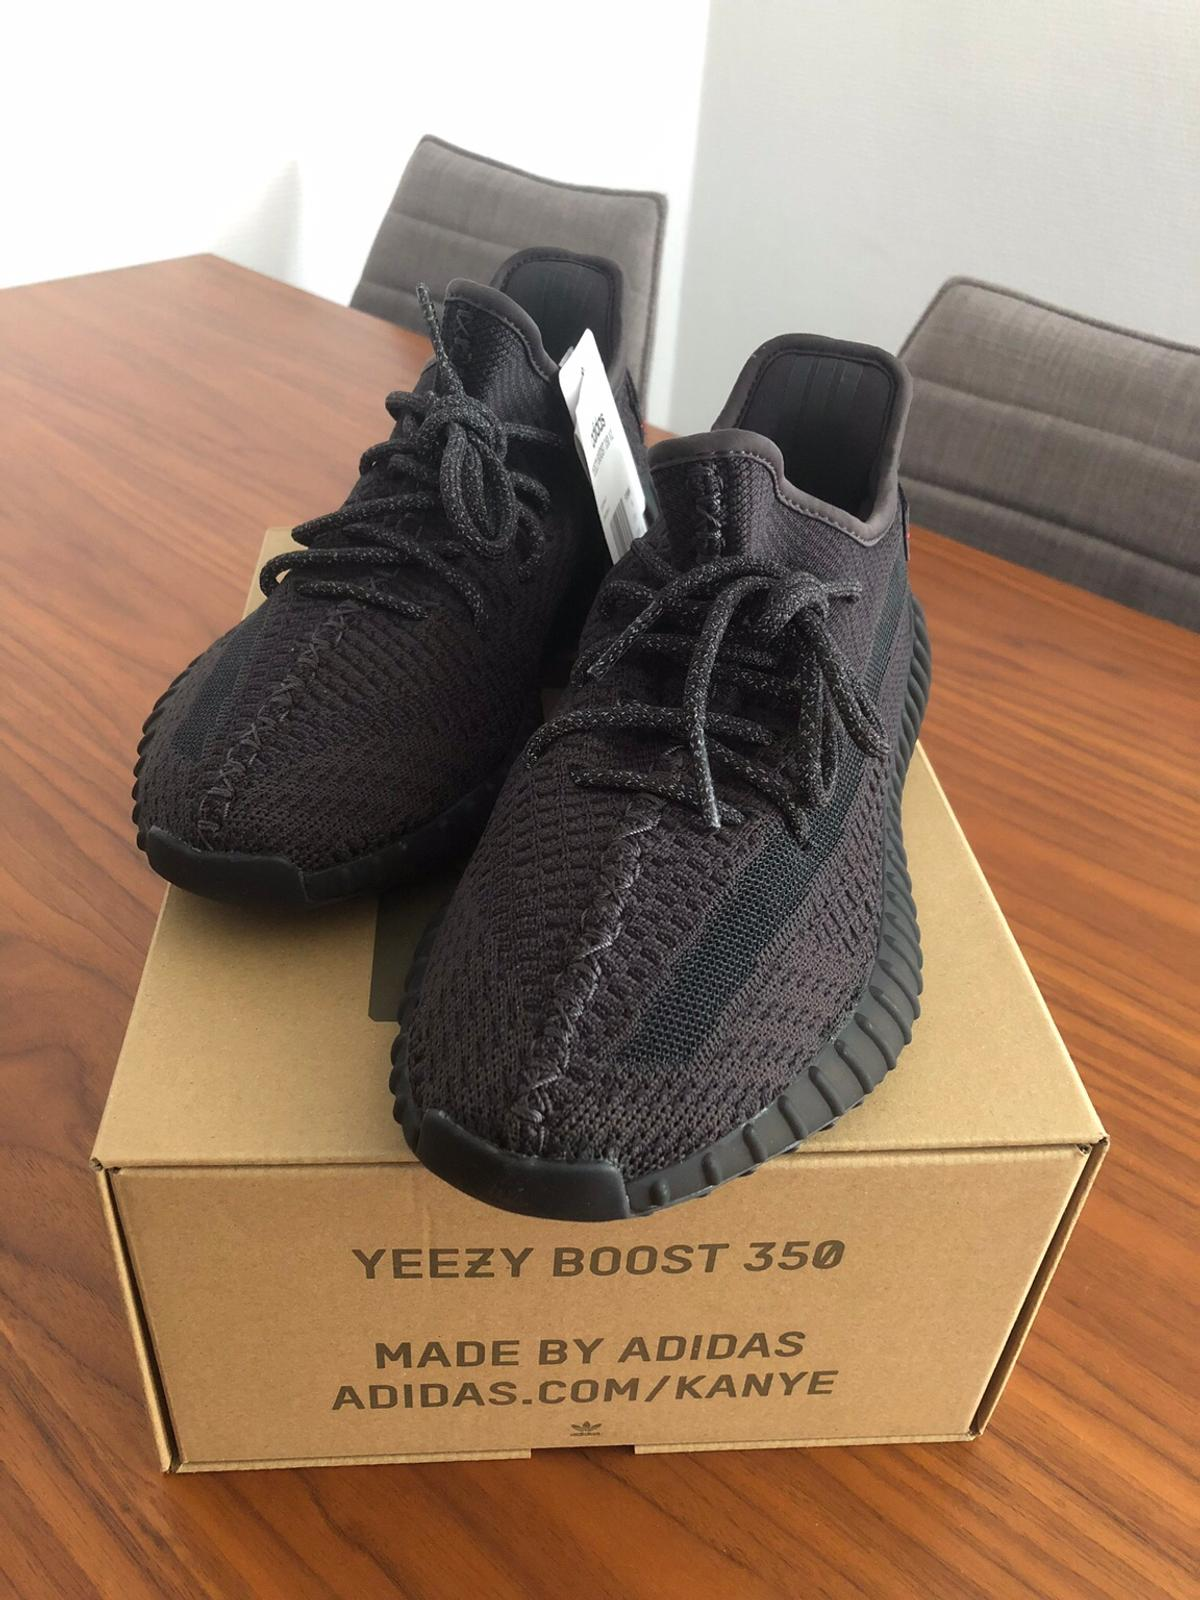 Yeezy Boost 350 V2 Static Black in 80935 München for €370.00